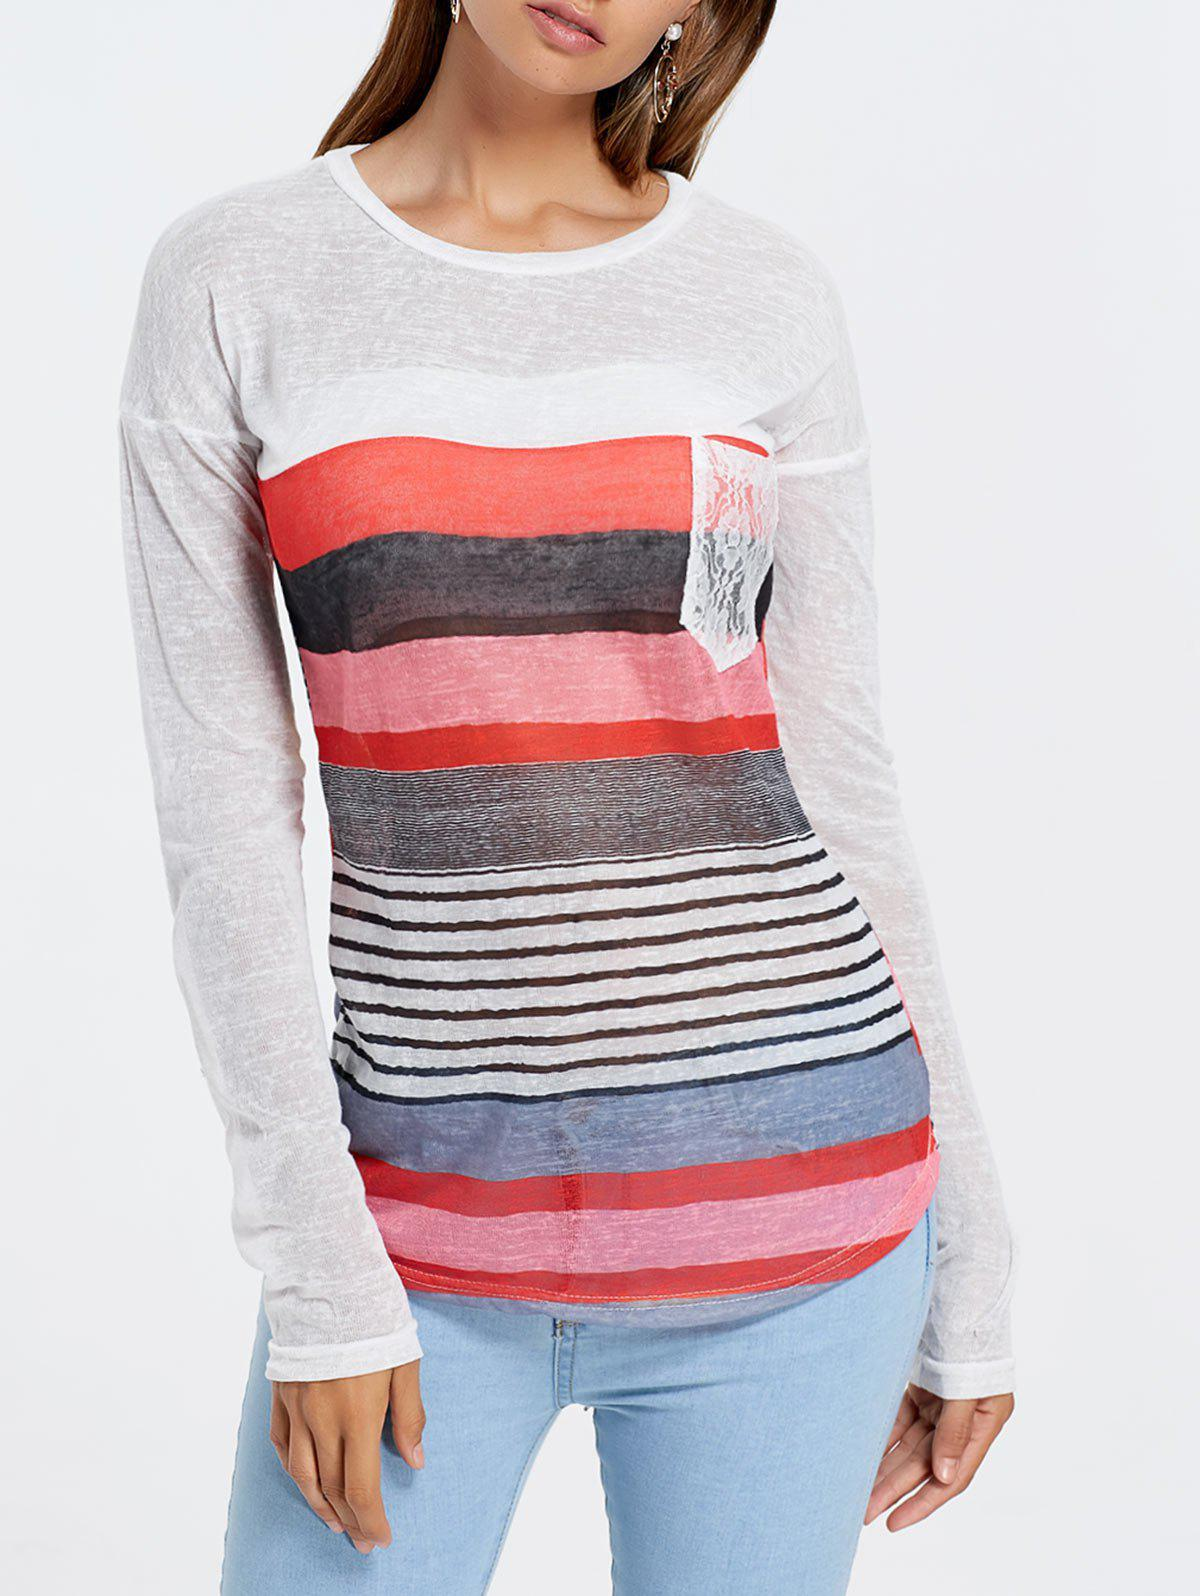 Long Sleeve Striped Irregular Sheer T-shirtWOMEN<br><br>Size: L; Color: COLORMIX; Material: Polyester; Sleeve Length: Full; Collar: Jewel Neck; Style: Fashion; Pattern Type: Striped; Season: Spring,Fall; Weight: 0.191kg; Package Contents: 1 x T-Shirt;